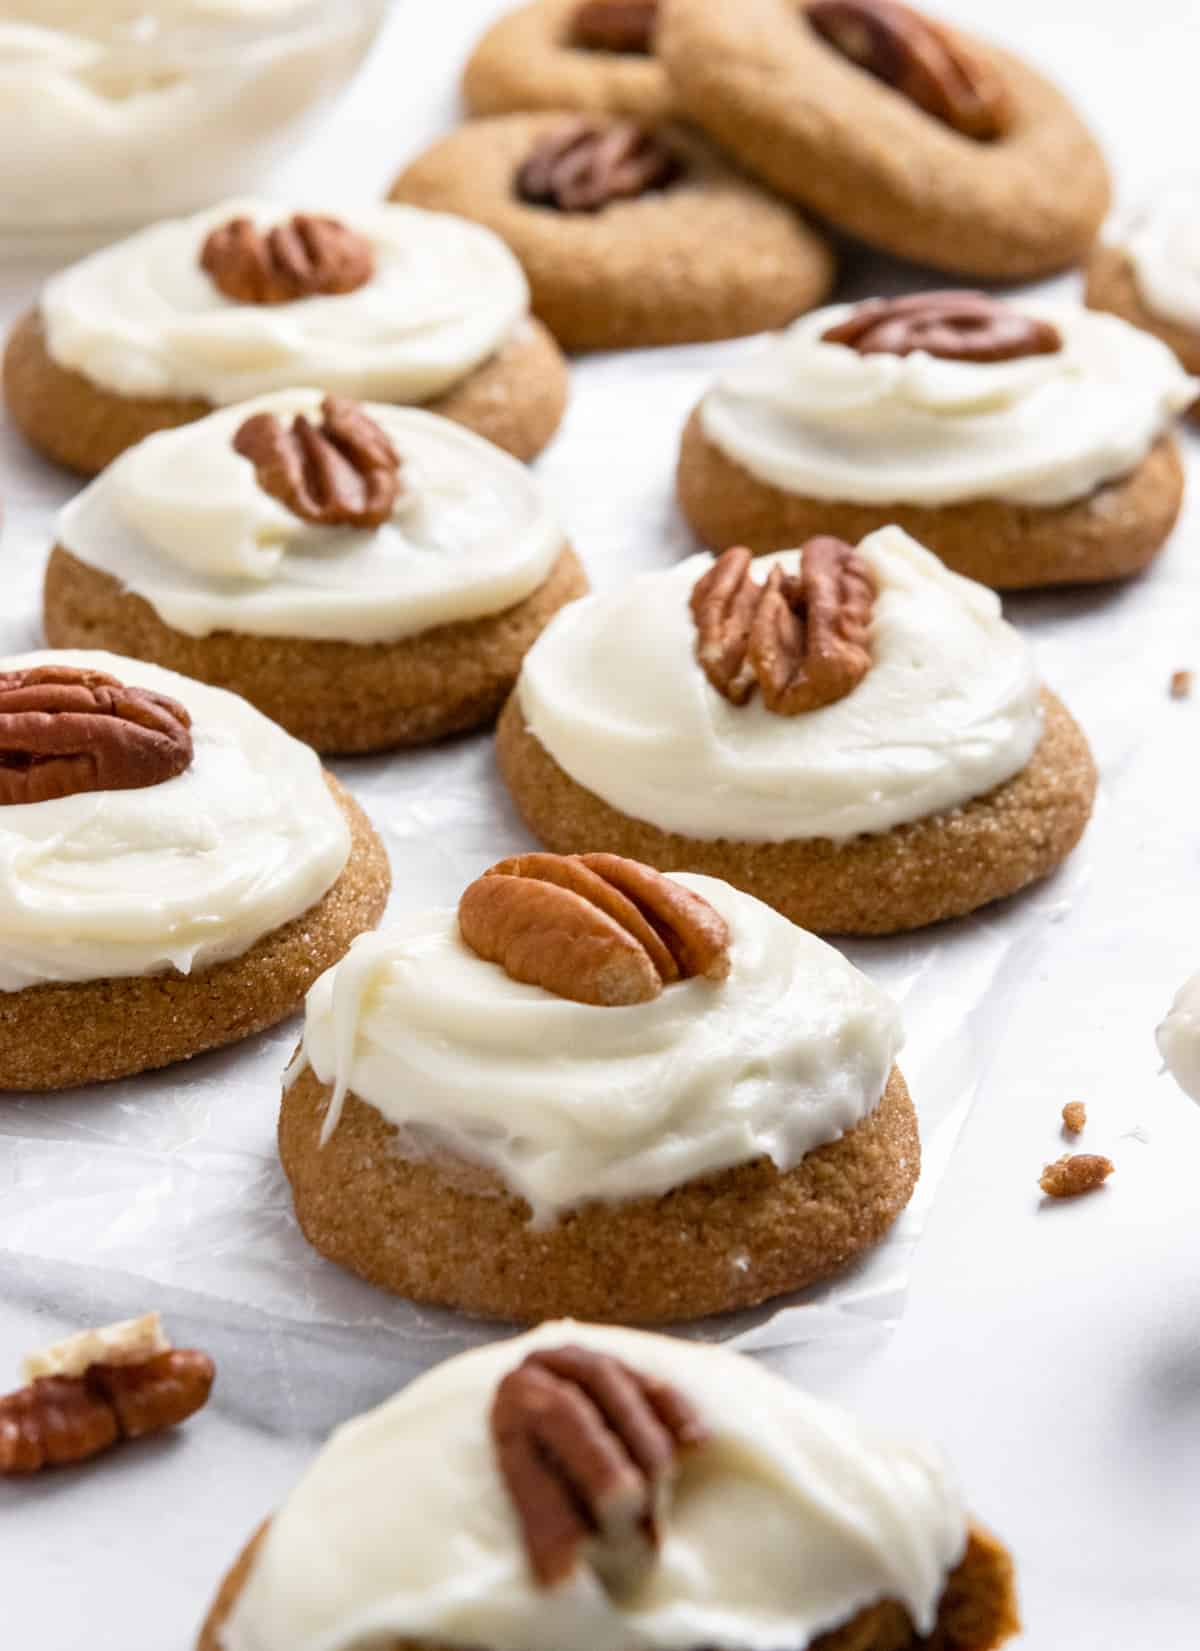 Pumpkin Spice cookies with cream cheese icing and pecan on wax paper.